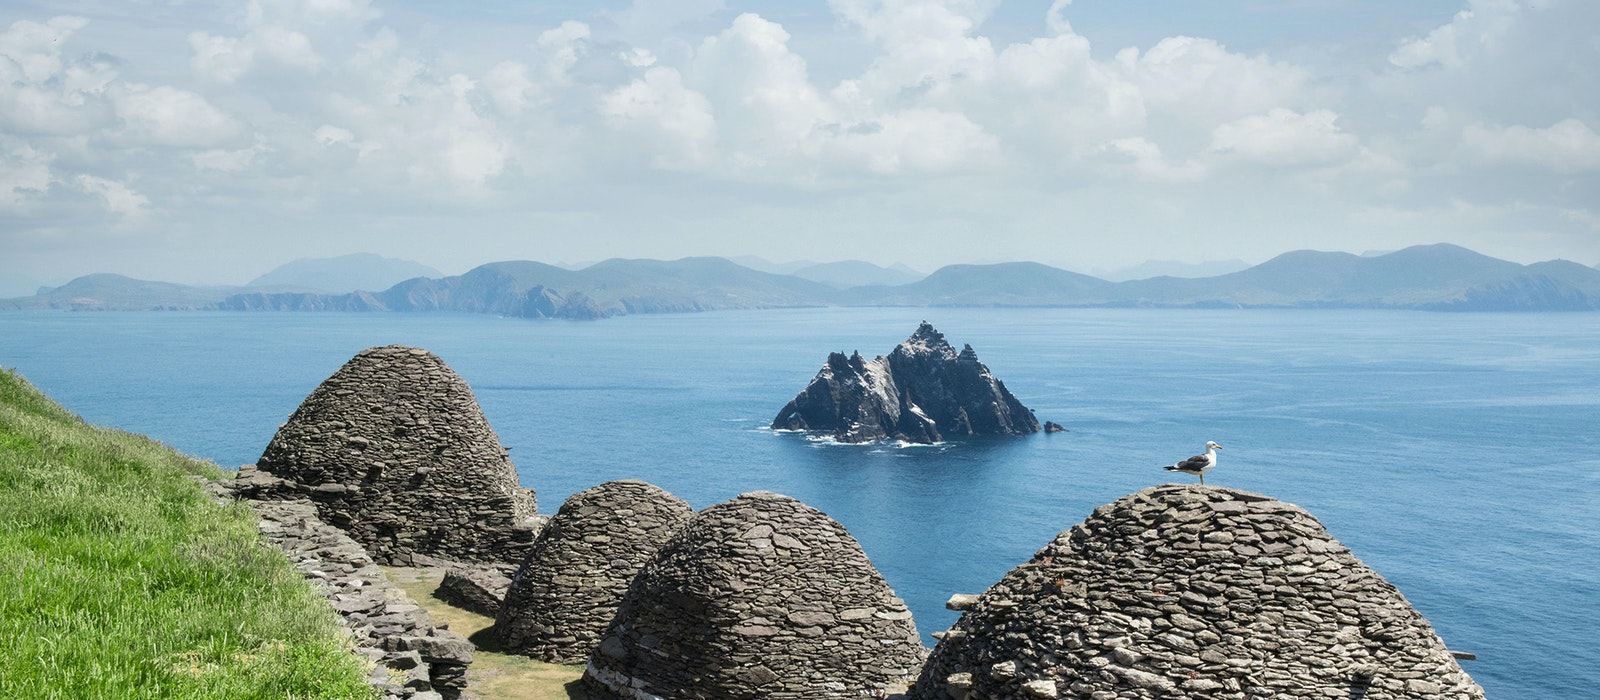 Two rocky islands off the coast of Ireland, called Skellig Michael and Small Skellig,are a UNESCO World Heritage Site.